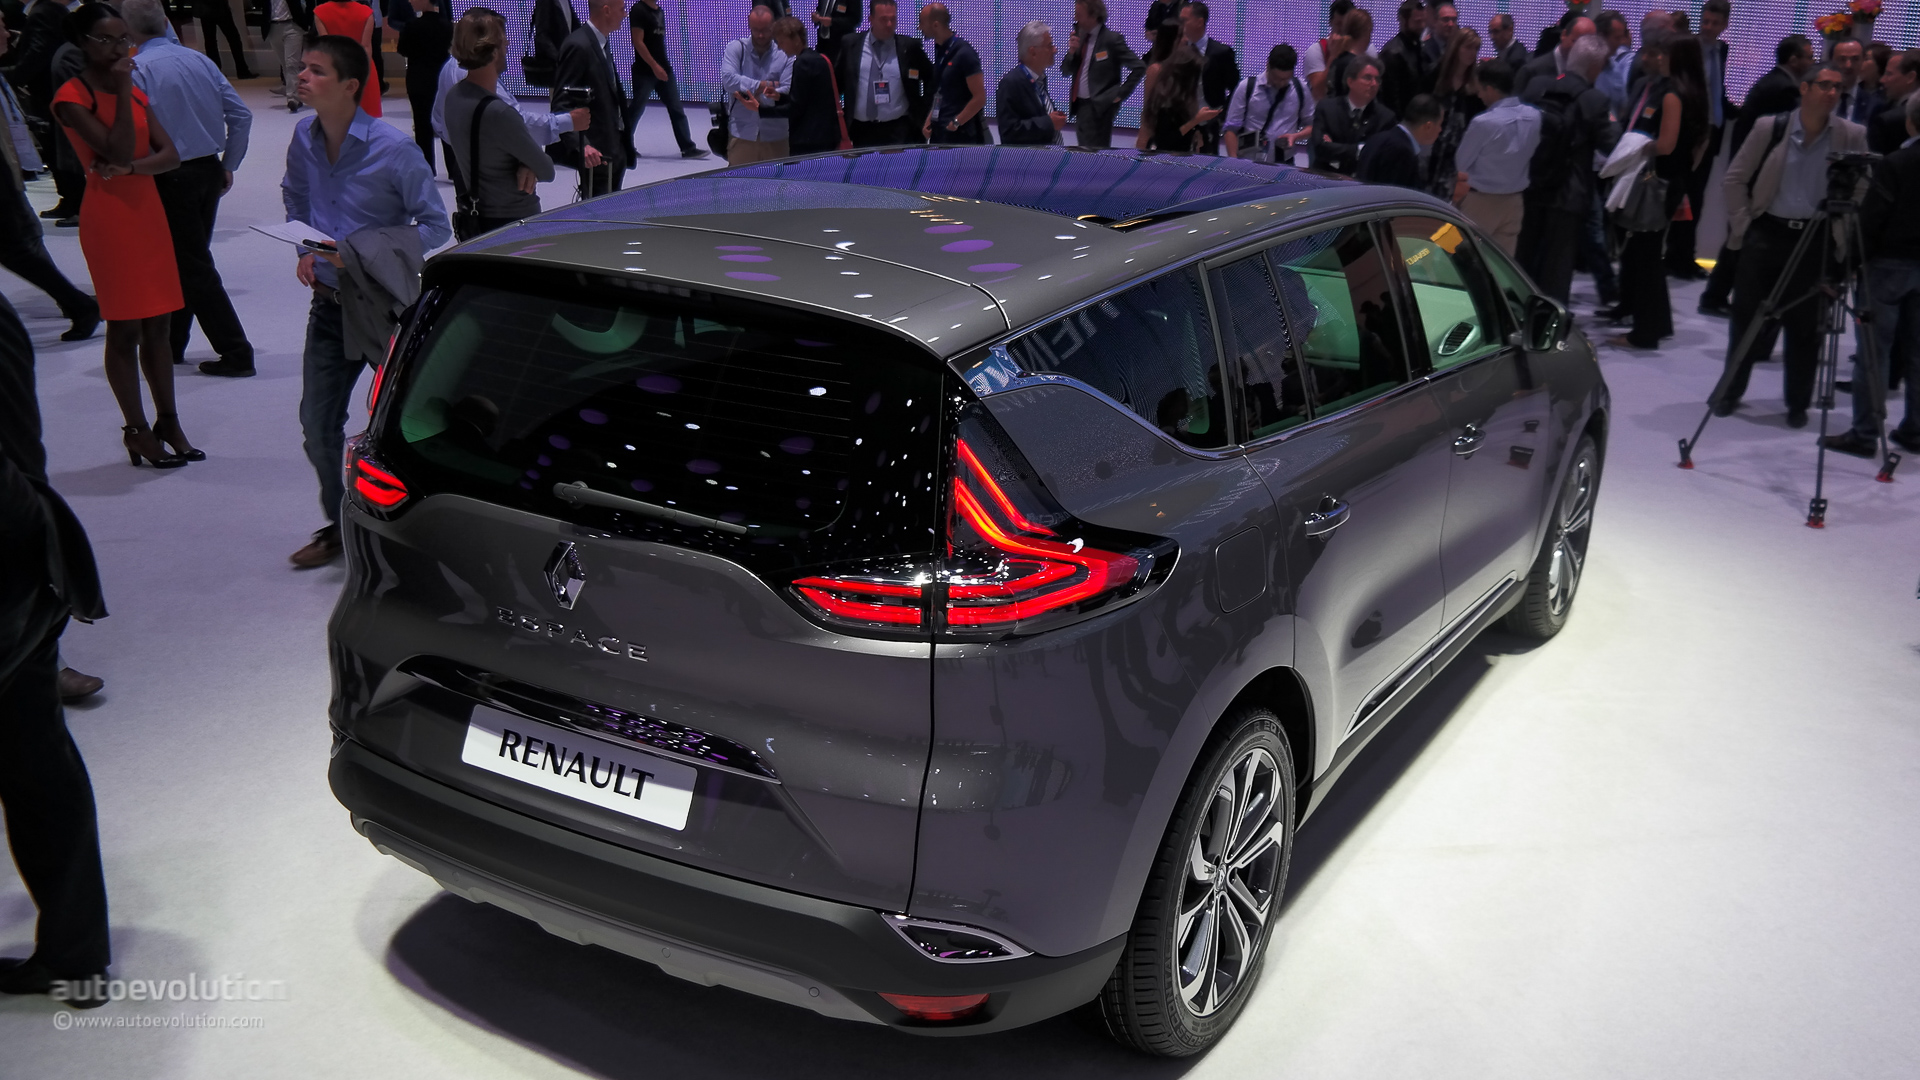 2015 renault espace has a clio rs 200 horsepower engine live photos autoevolution. Black Bedroom Furniture Sets. Home Design Ideas